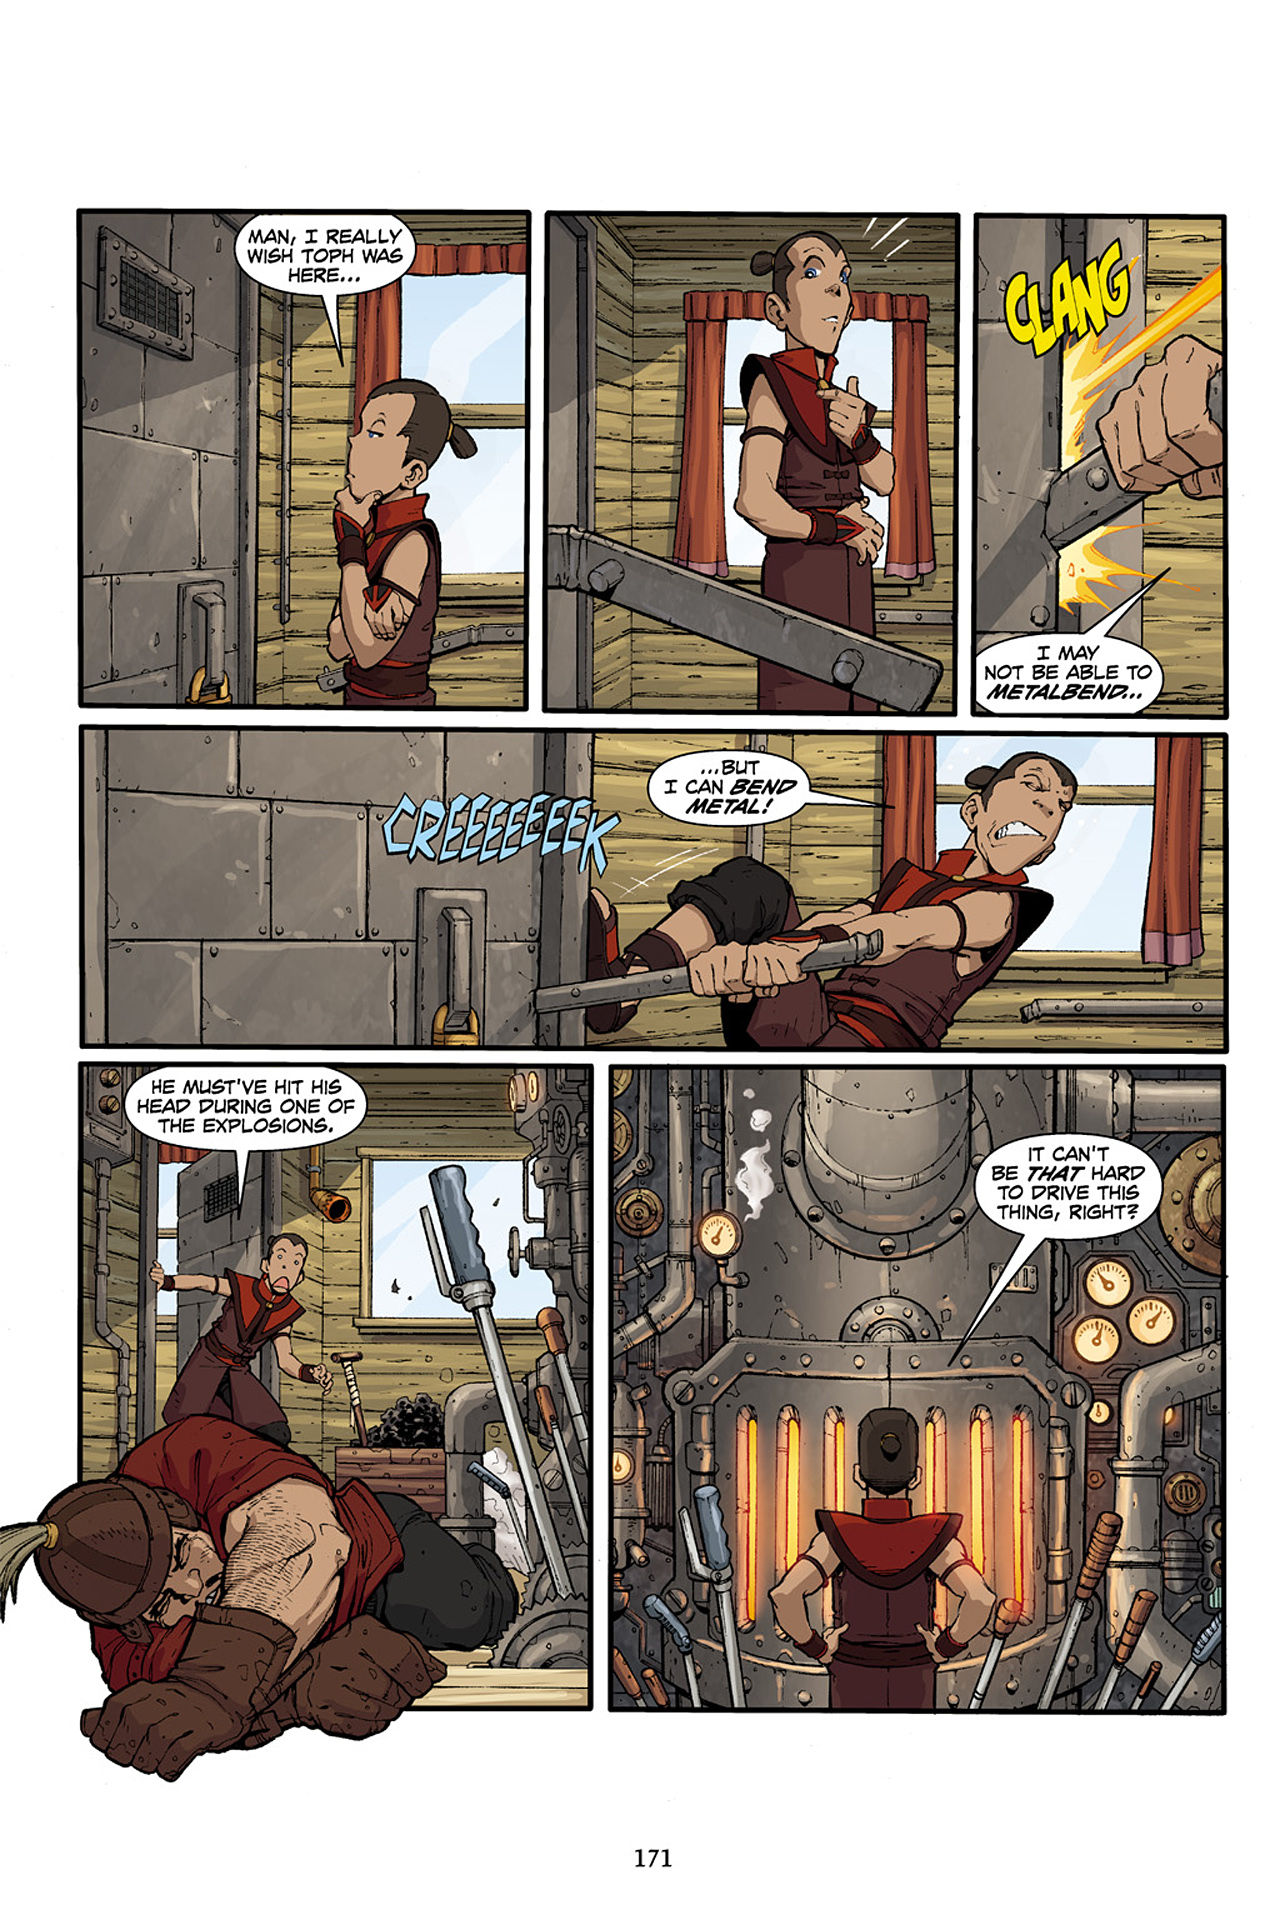 Nickelodeon Avatar: The Last Airbender - The Lost Adventures chap full pic 172